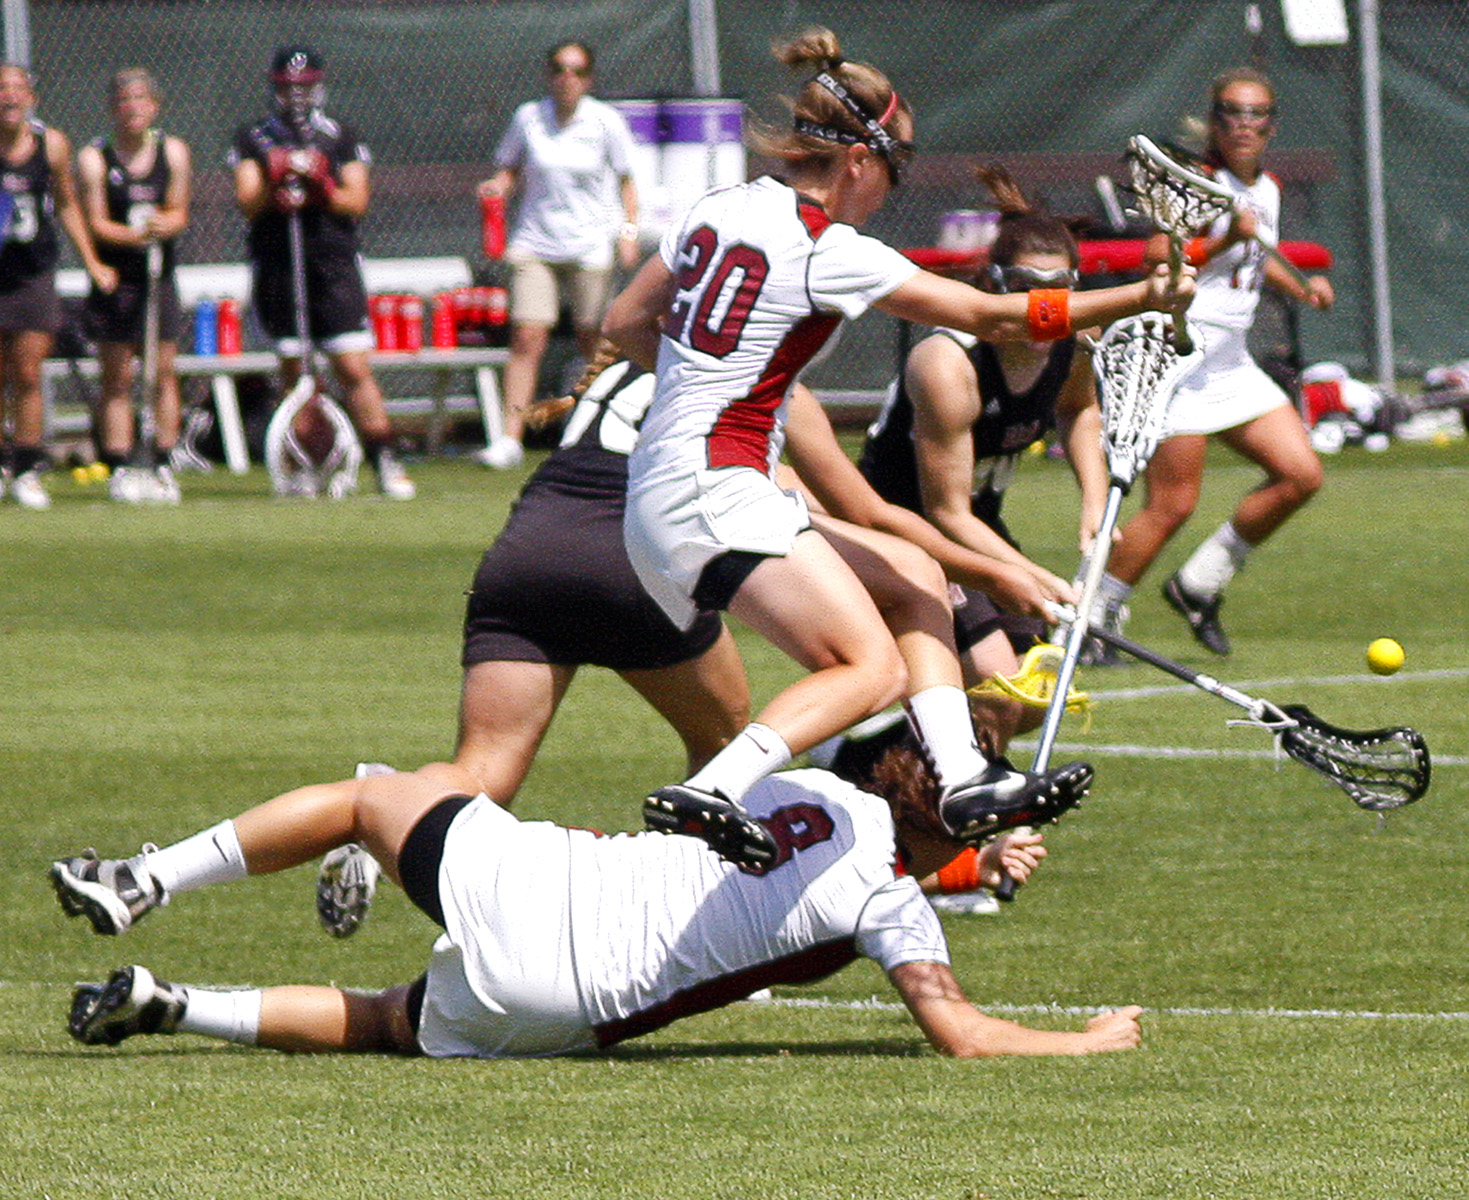 The Ladies don't fear contact pursuing the Ball in Lacrosse